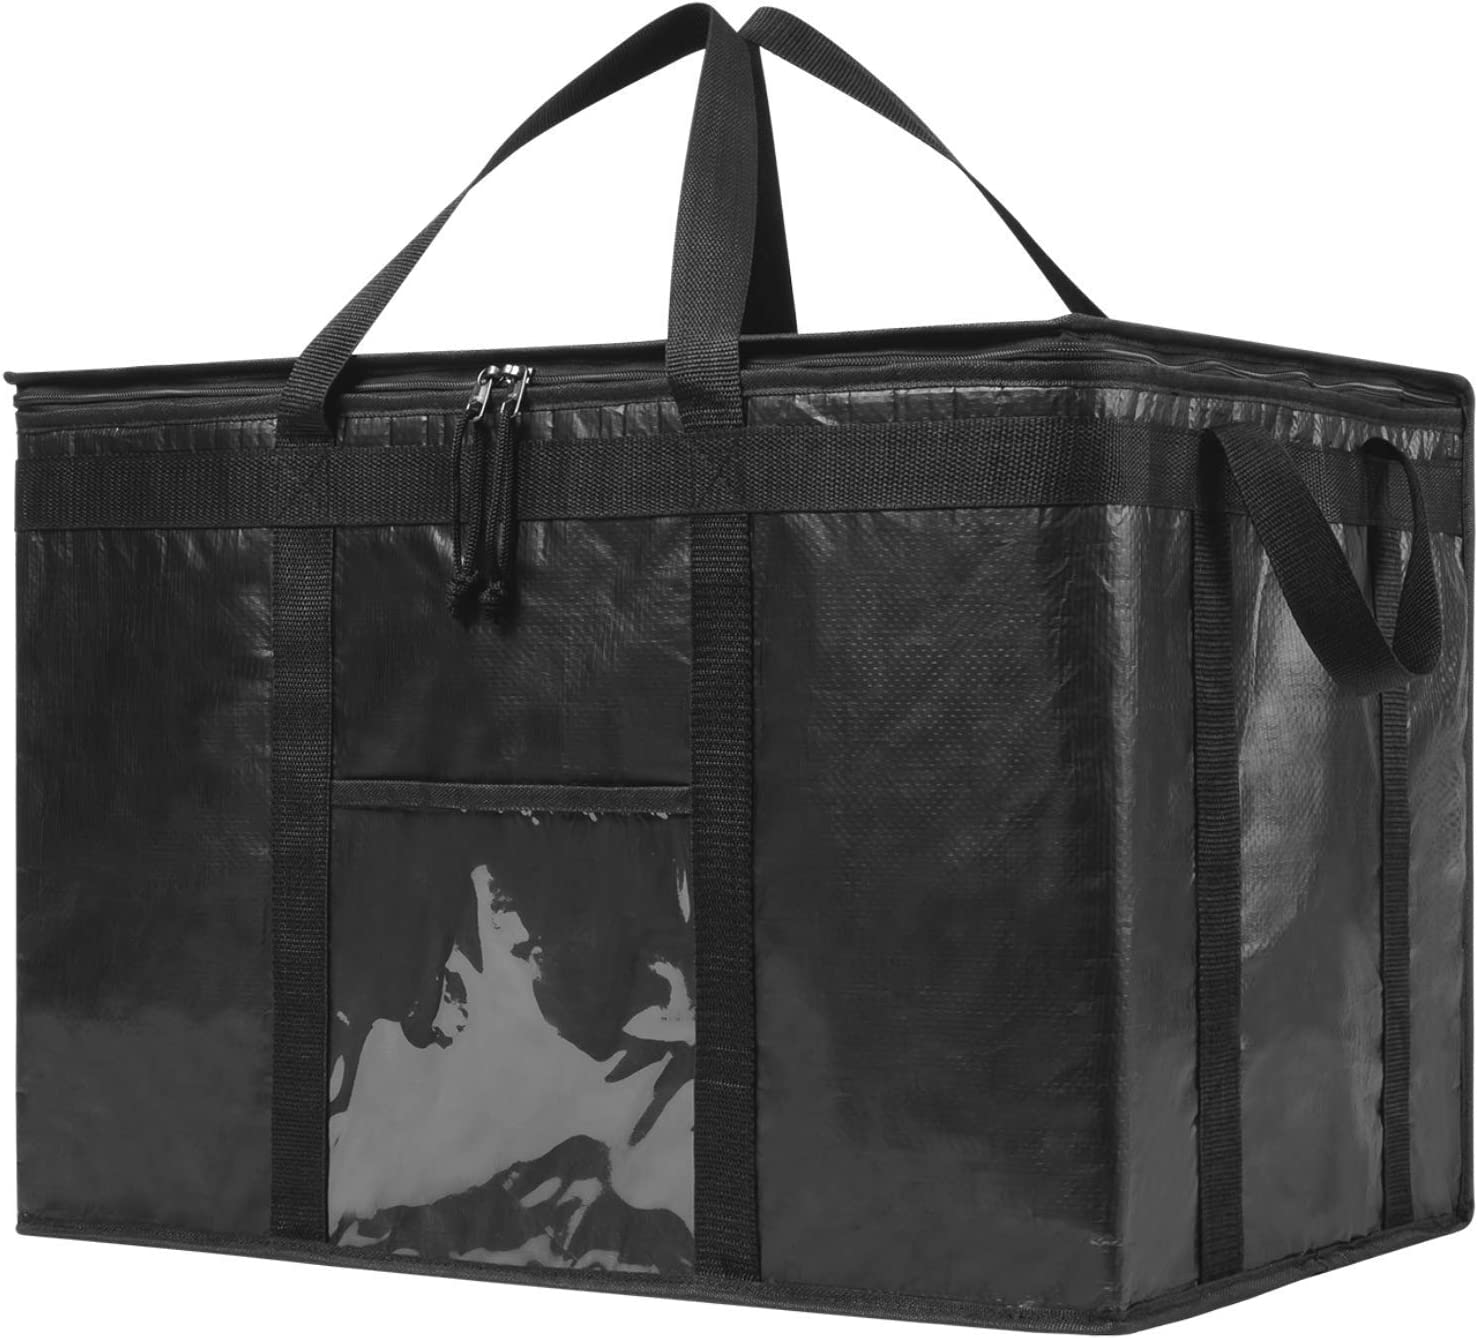 NZ Home XXXL Commercial Food Delivery Bag, Insulated Grocery Bag | Ideal for Professional Food & Groceries Delivery Restaurant, Catering, Buffet Server Transport | YKK Dual Zipper (XXXL 1 Pack)